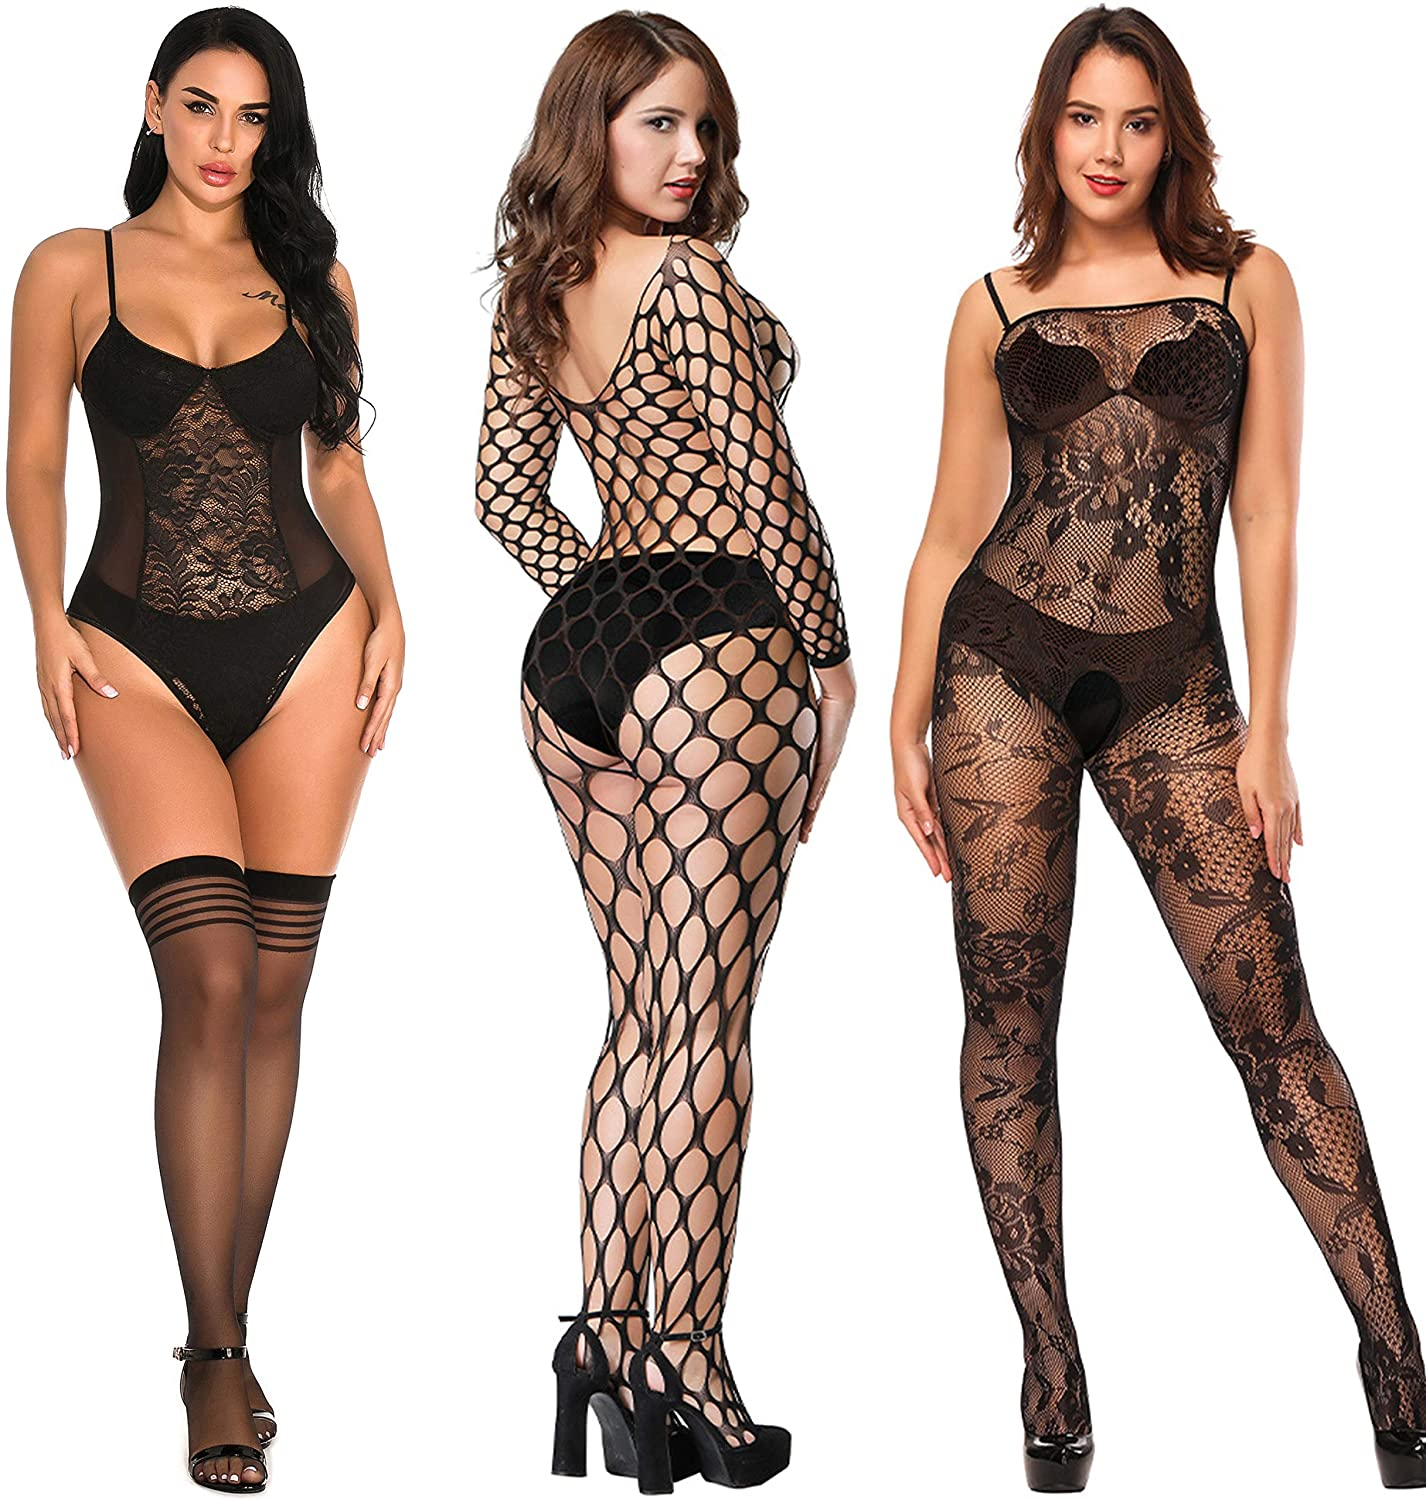 BECHARNY 1 or 2 or 3pcs/lot Women Fishnet Bodystocking Plus Size Striped Mesh Babydoll Mini Dress Chemise